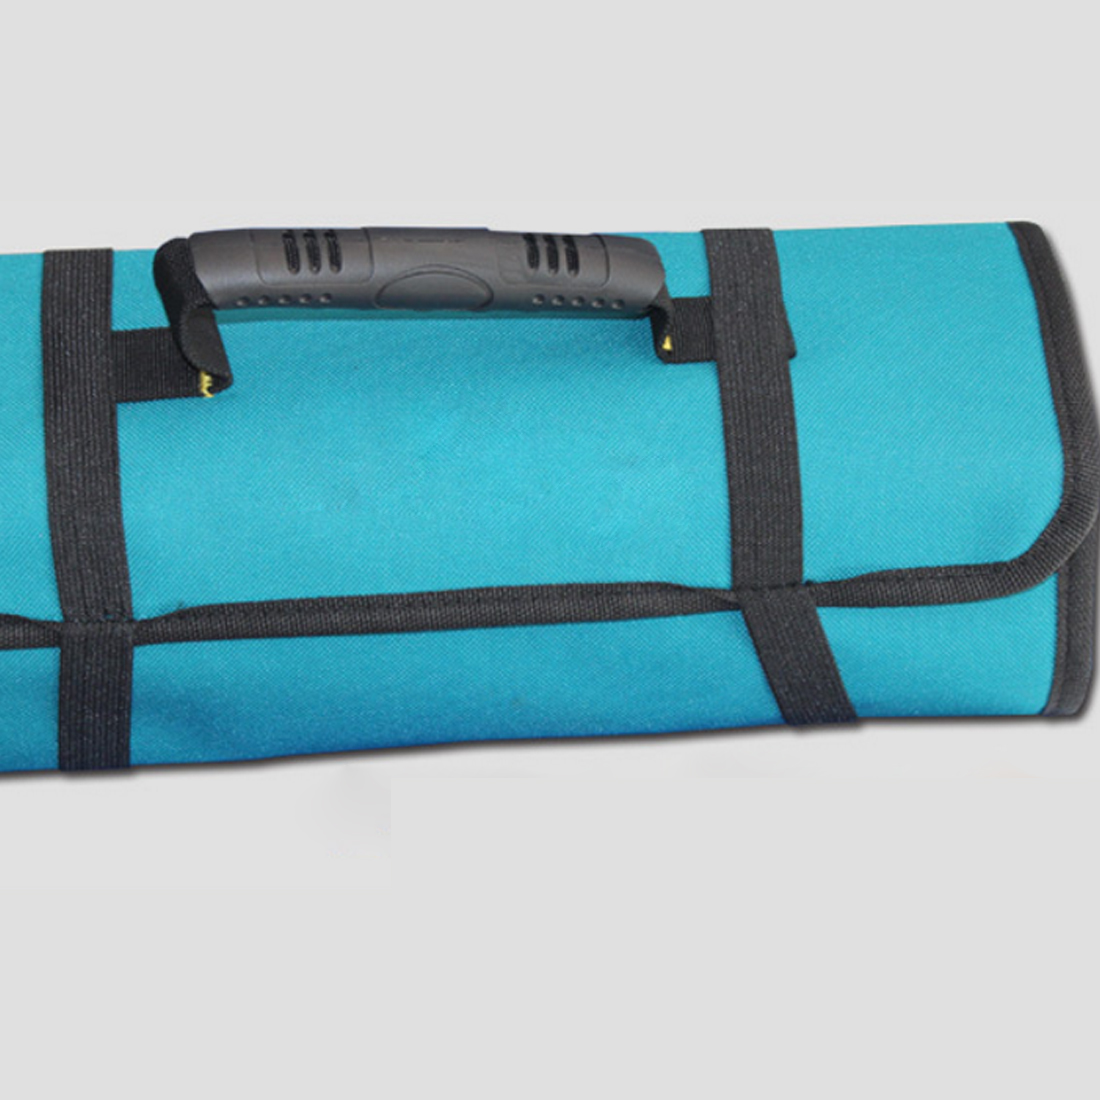 New Arrival Reels Storage Tools Bag Multifunction Utility Bag Electrical Package Oxford Canvas Waterproof With Carrying Handles ballistic nylon tools bag for tools storage 280x245x180mm